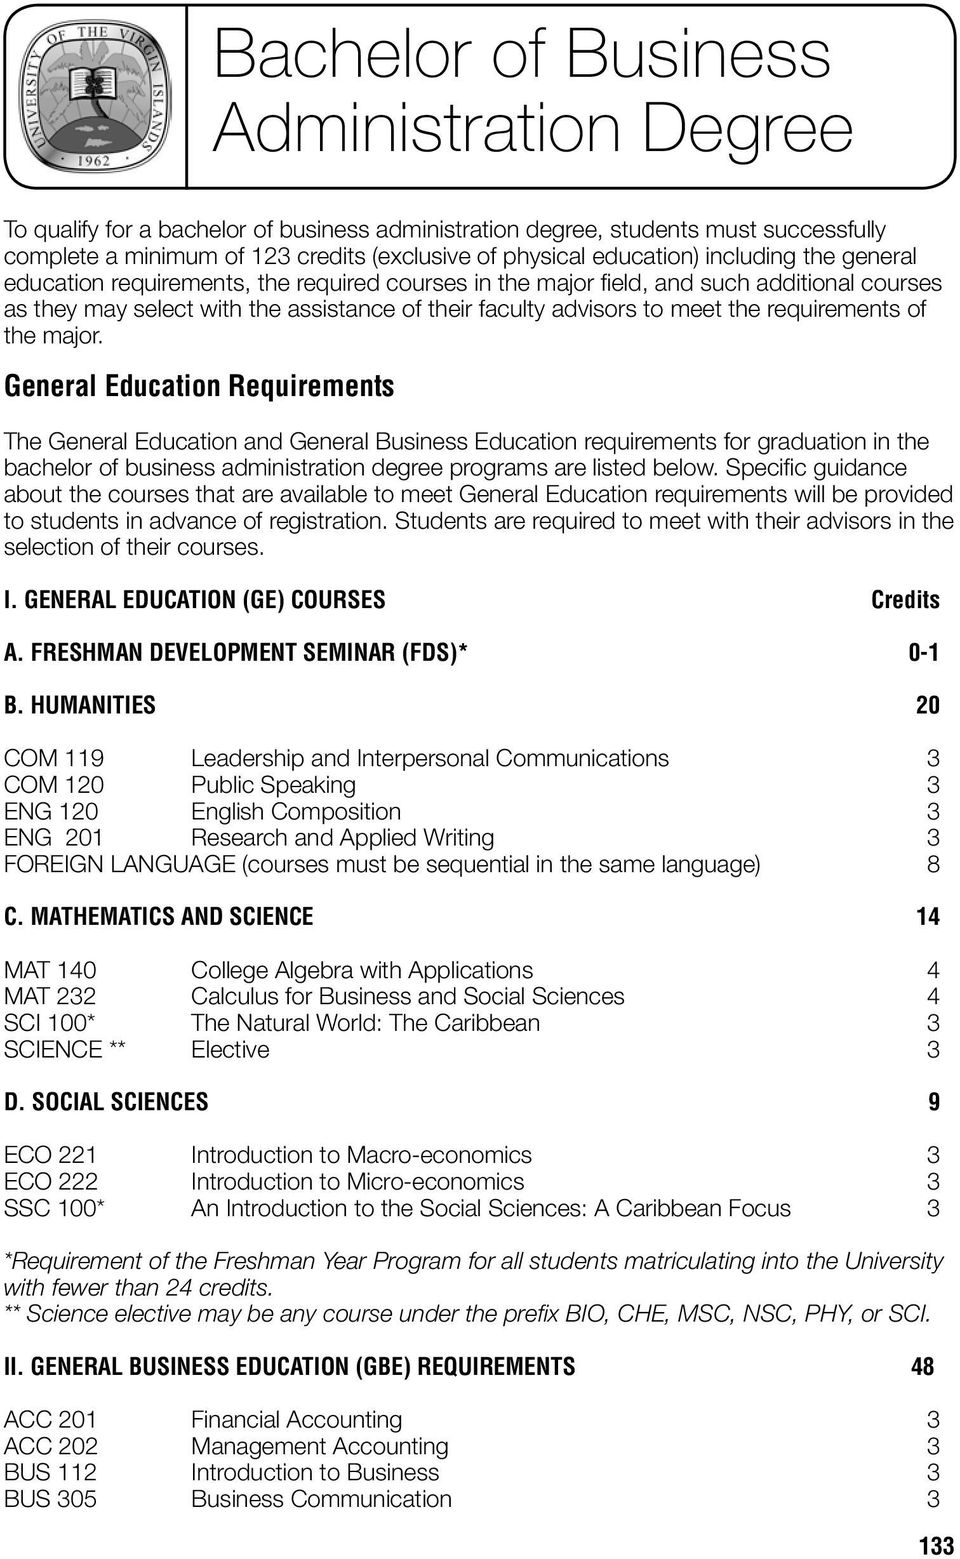 Bachelor Of Business Administration Degree Pdf